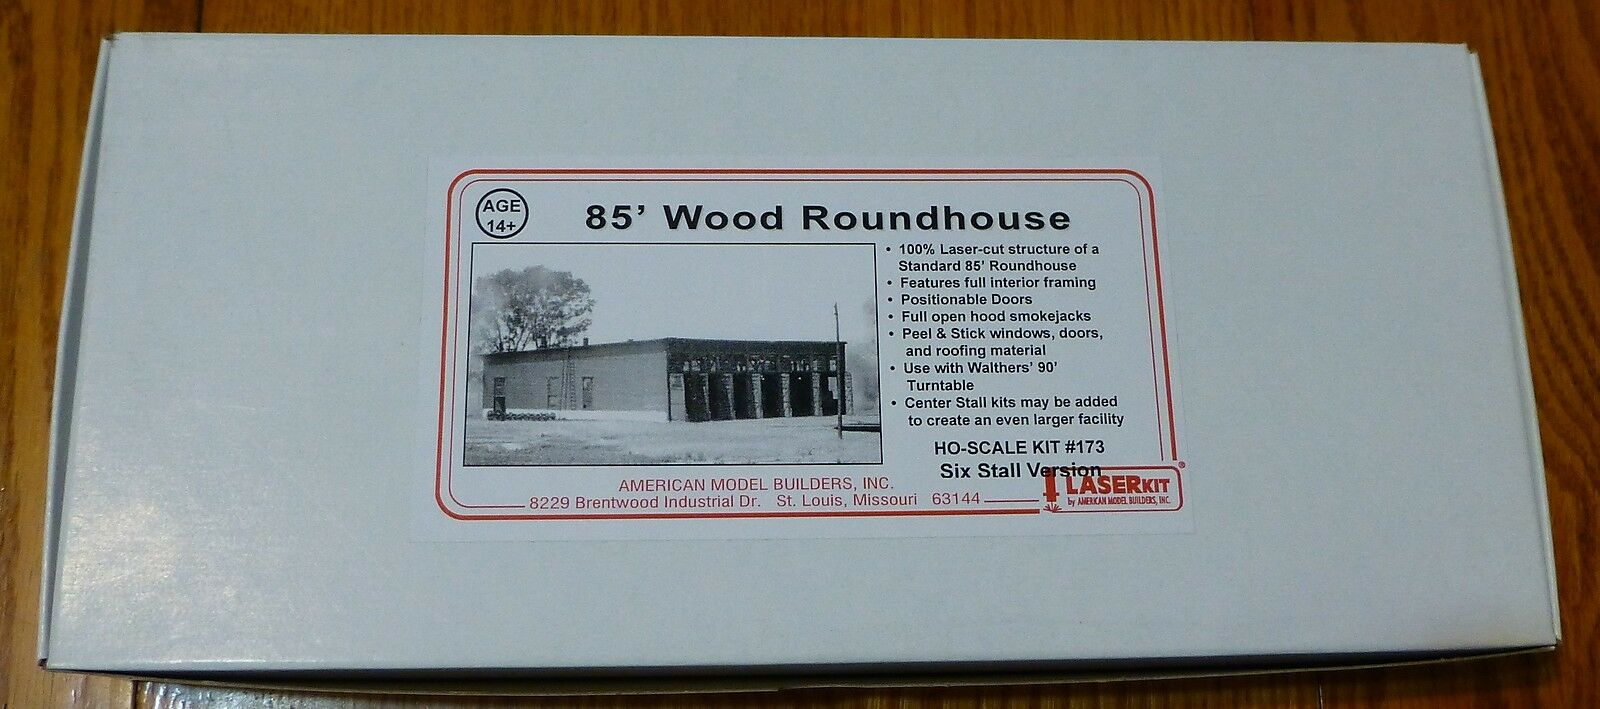 American modellolo Builders HO  173 Six Sttutti Version Roundhouse Kit Form